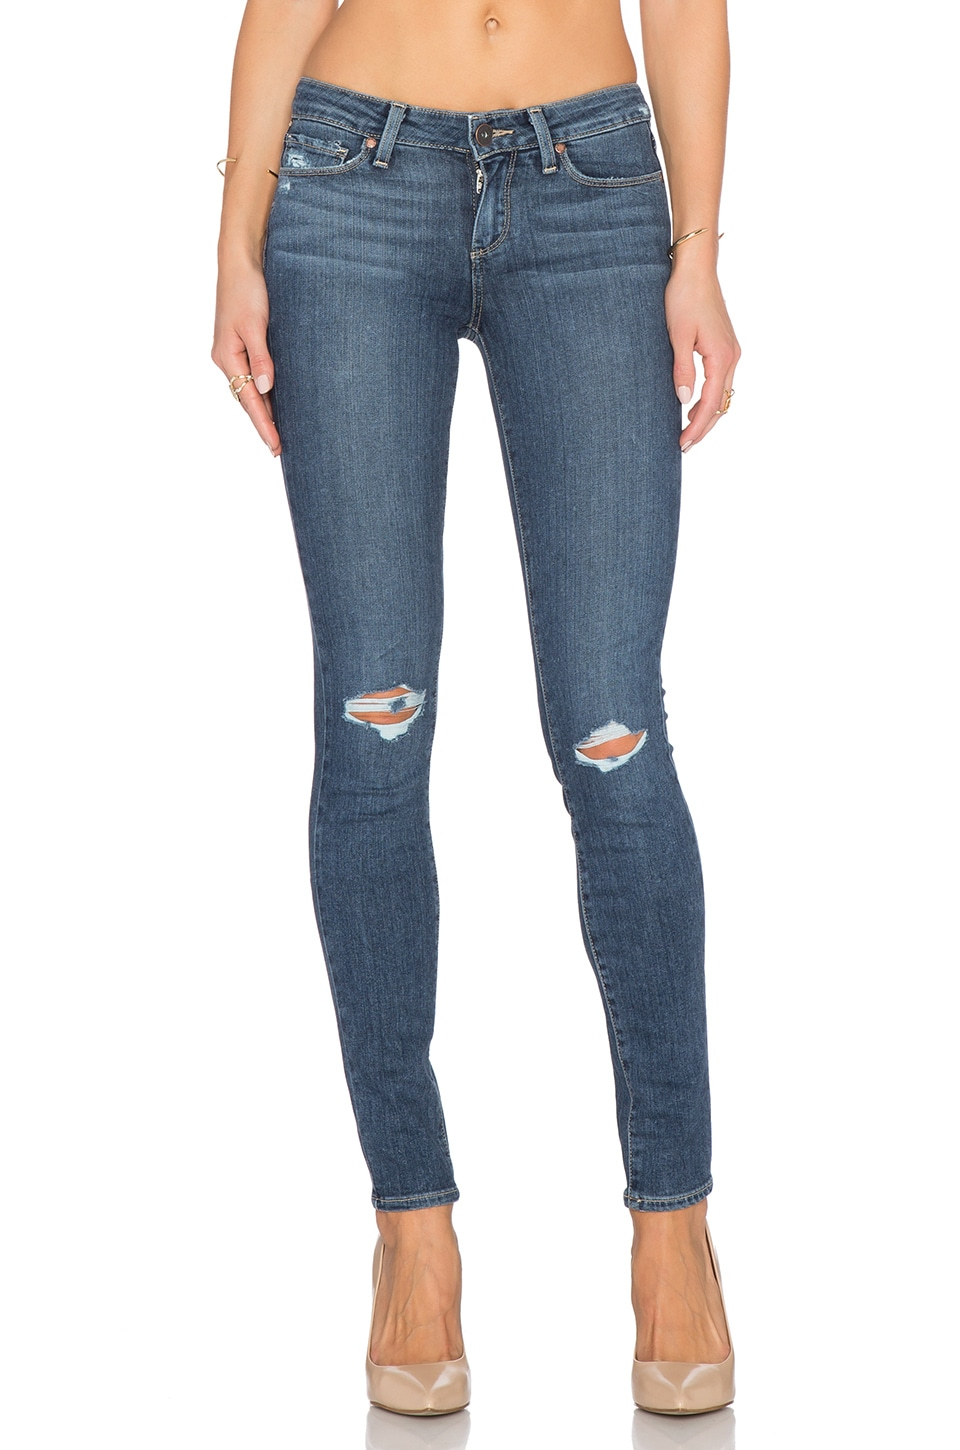 PAIGE Verdugo Ultra Skinny in Quinnley Destructed